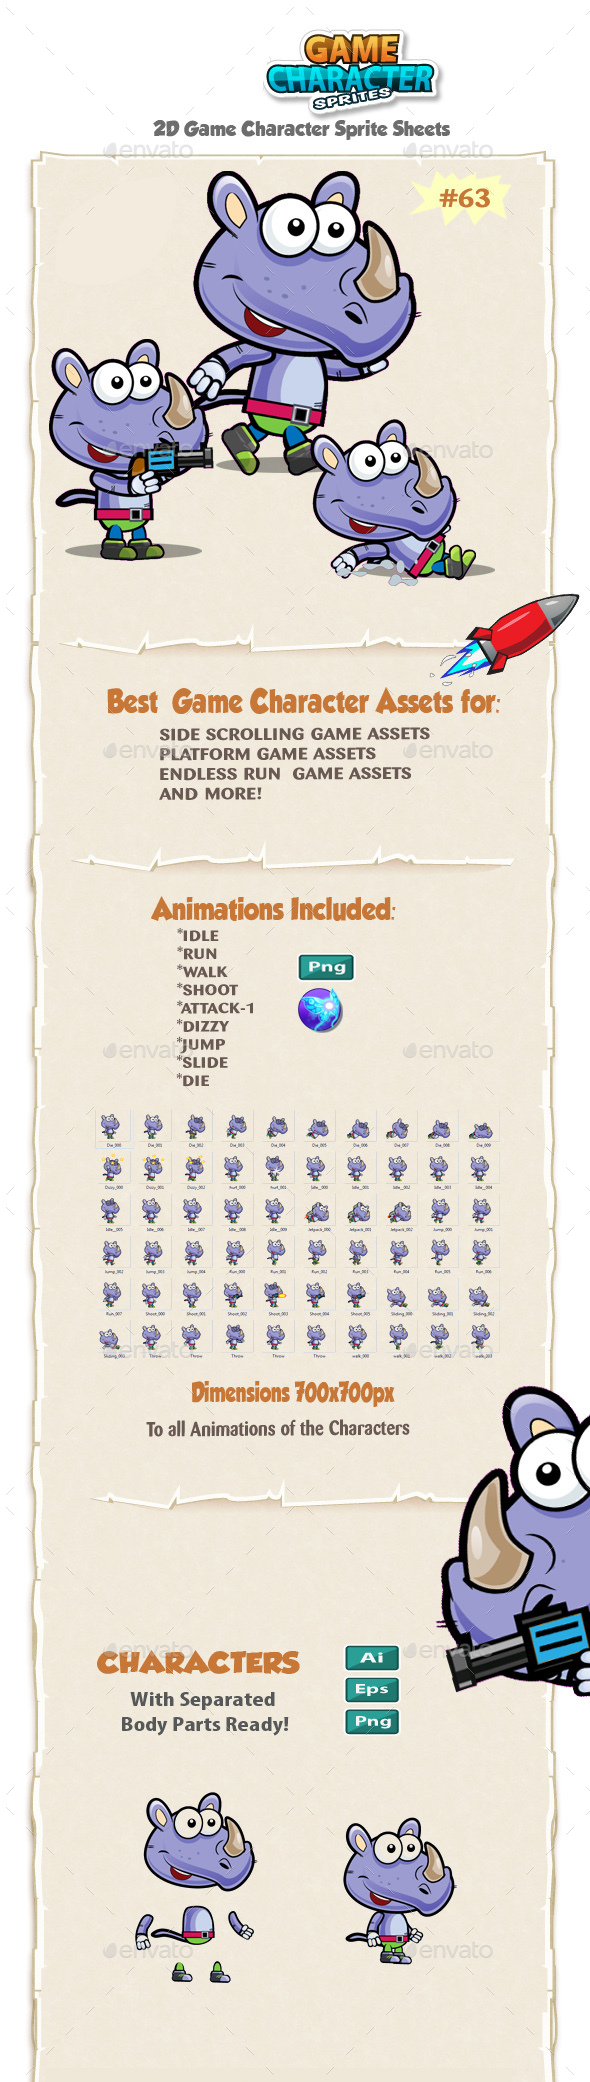 Rhino 2D Game Character Sprites 63 - Sprites Game Assets